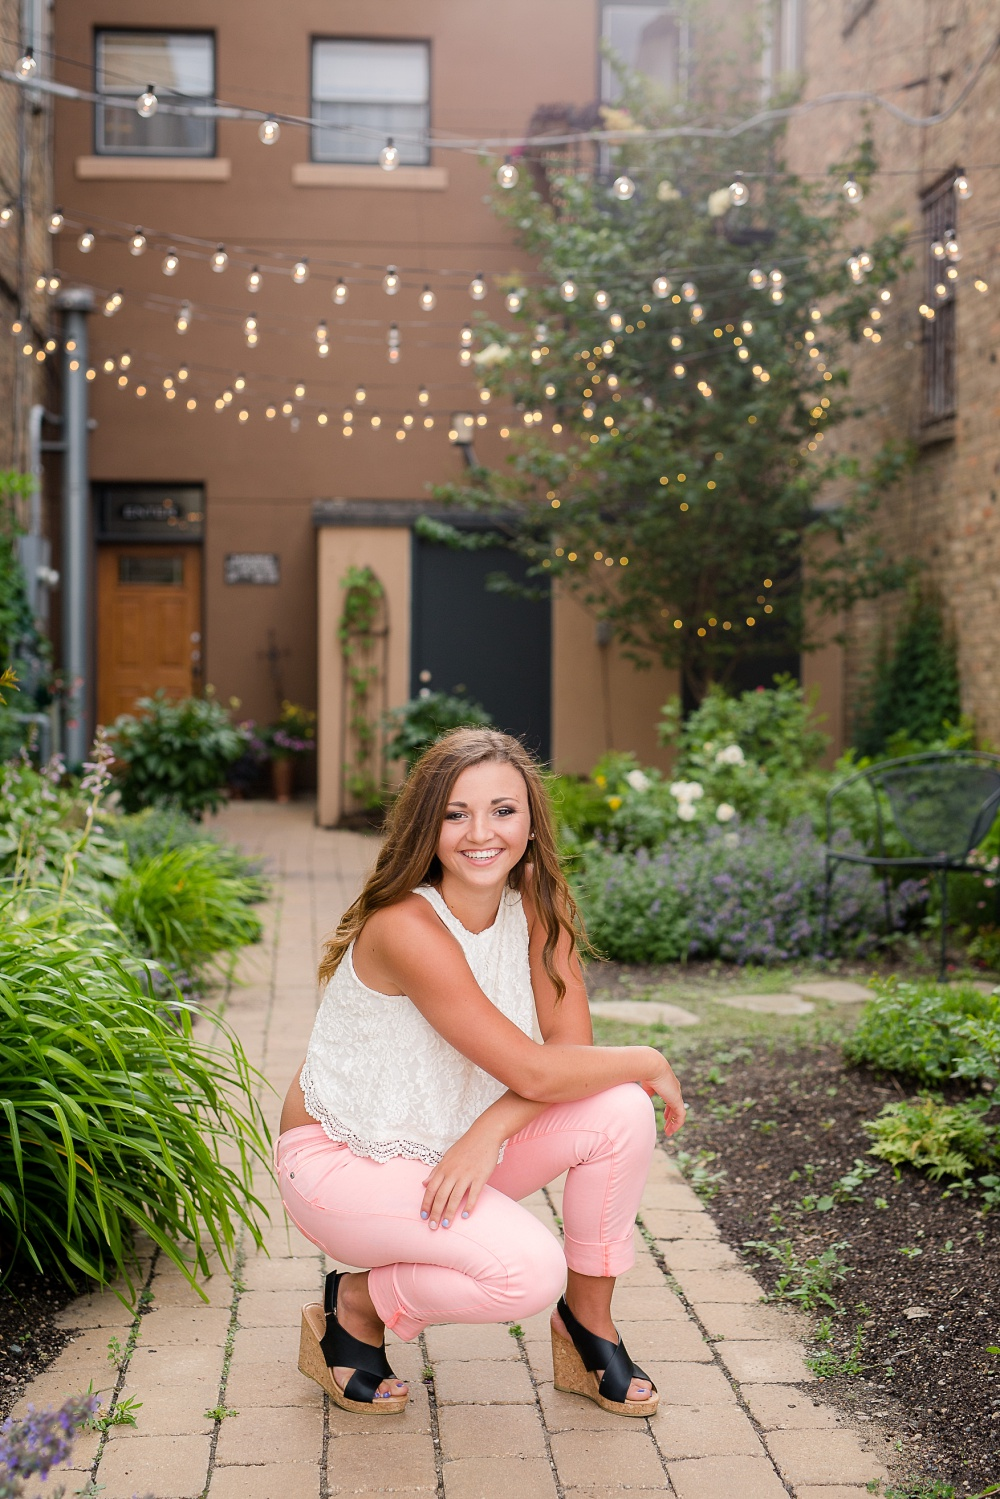 Urban Styled High School Senior Portraits in Detroit Lakes, MN | Photographed by Amber Langerud Photography | Senior Kneeling on Brick Pathway